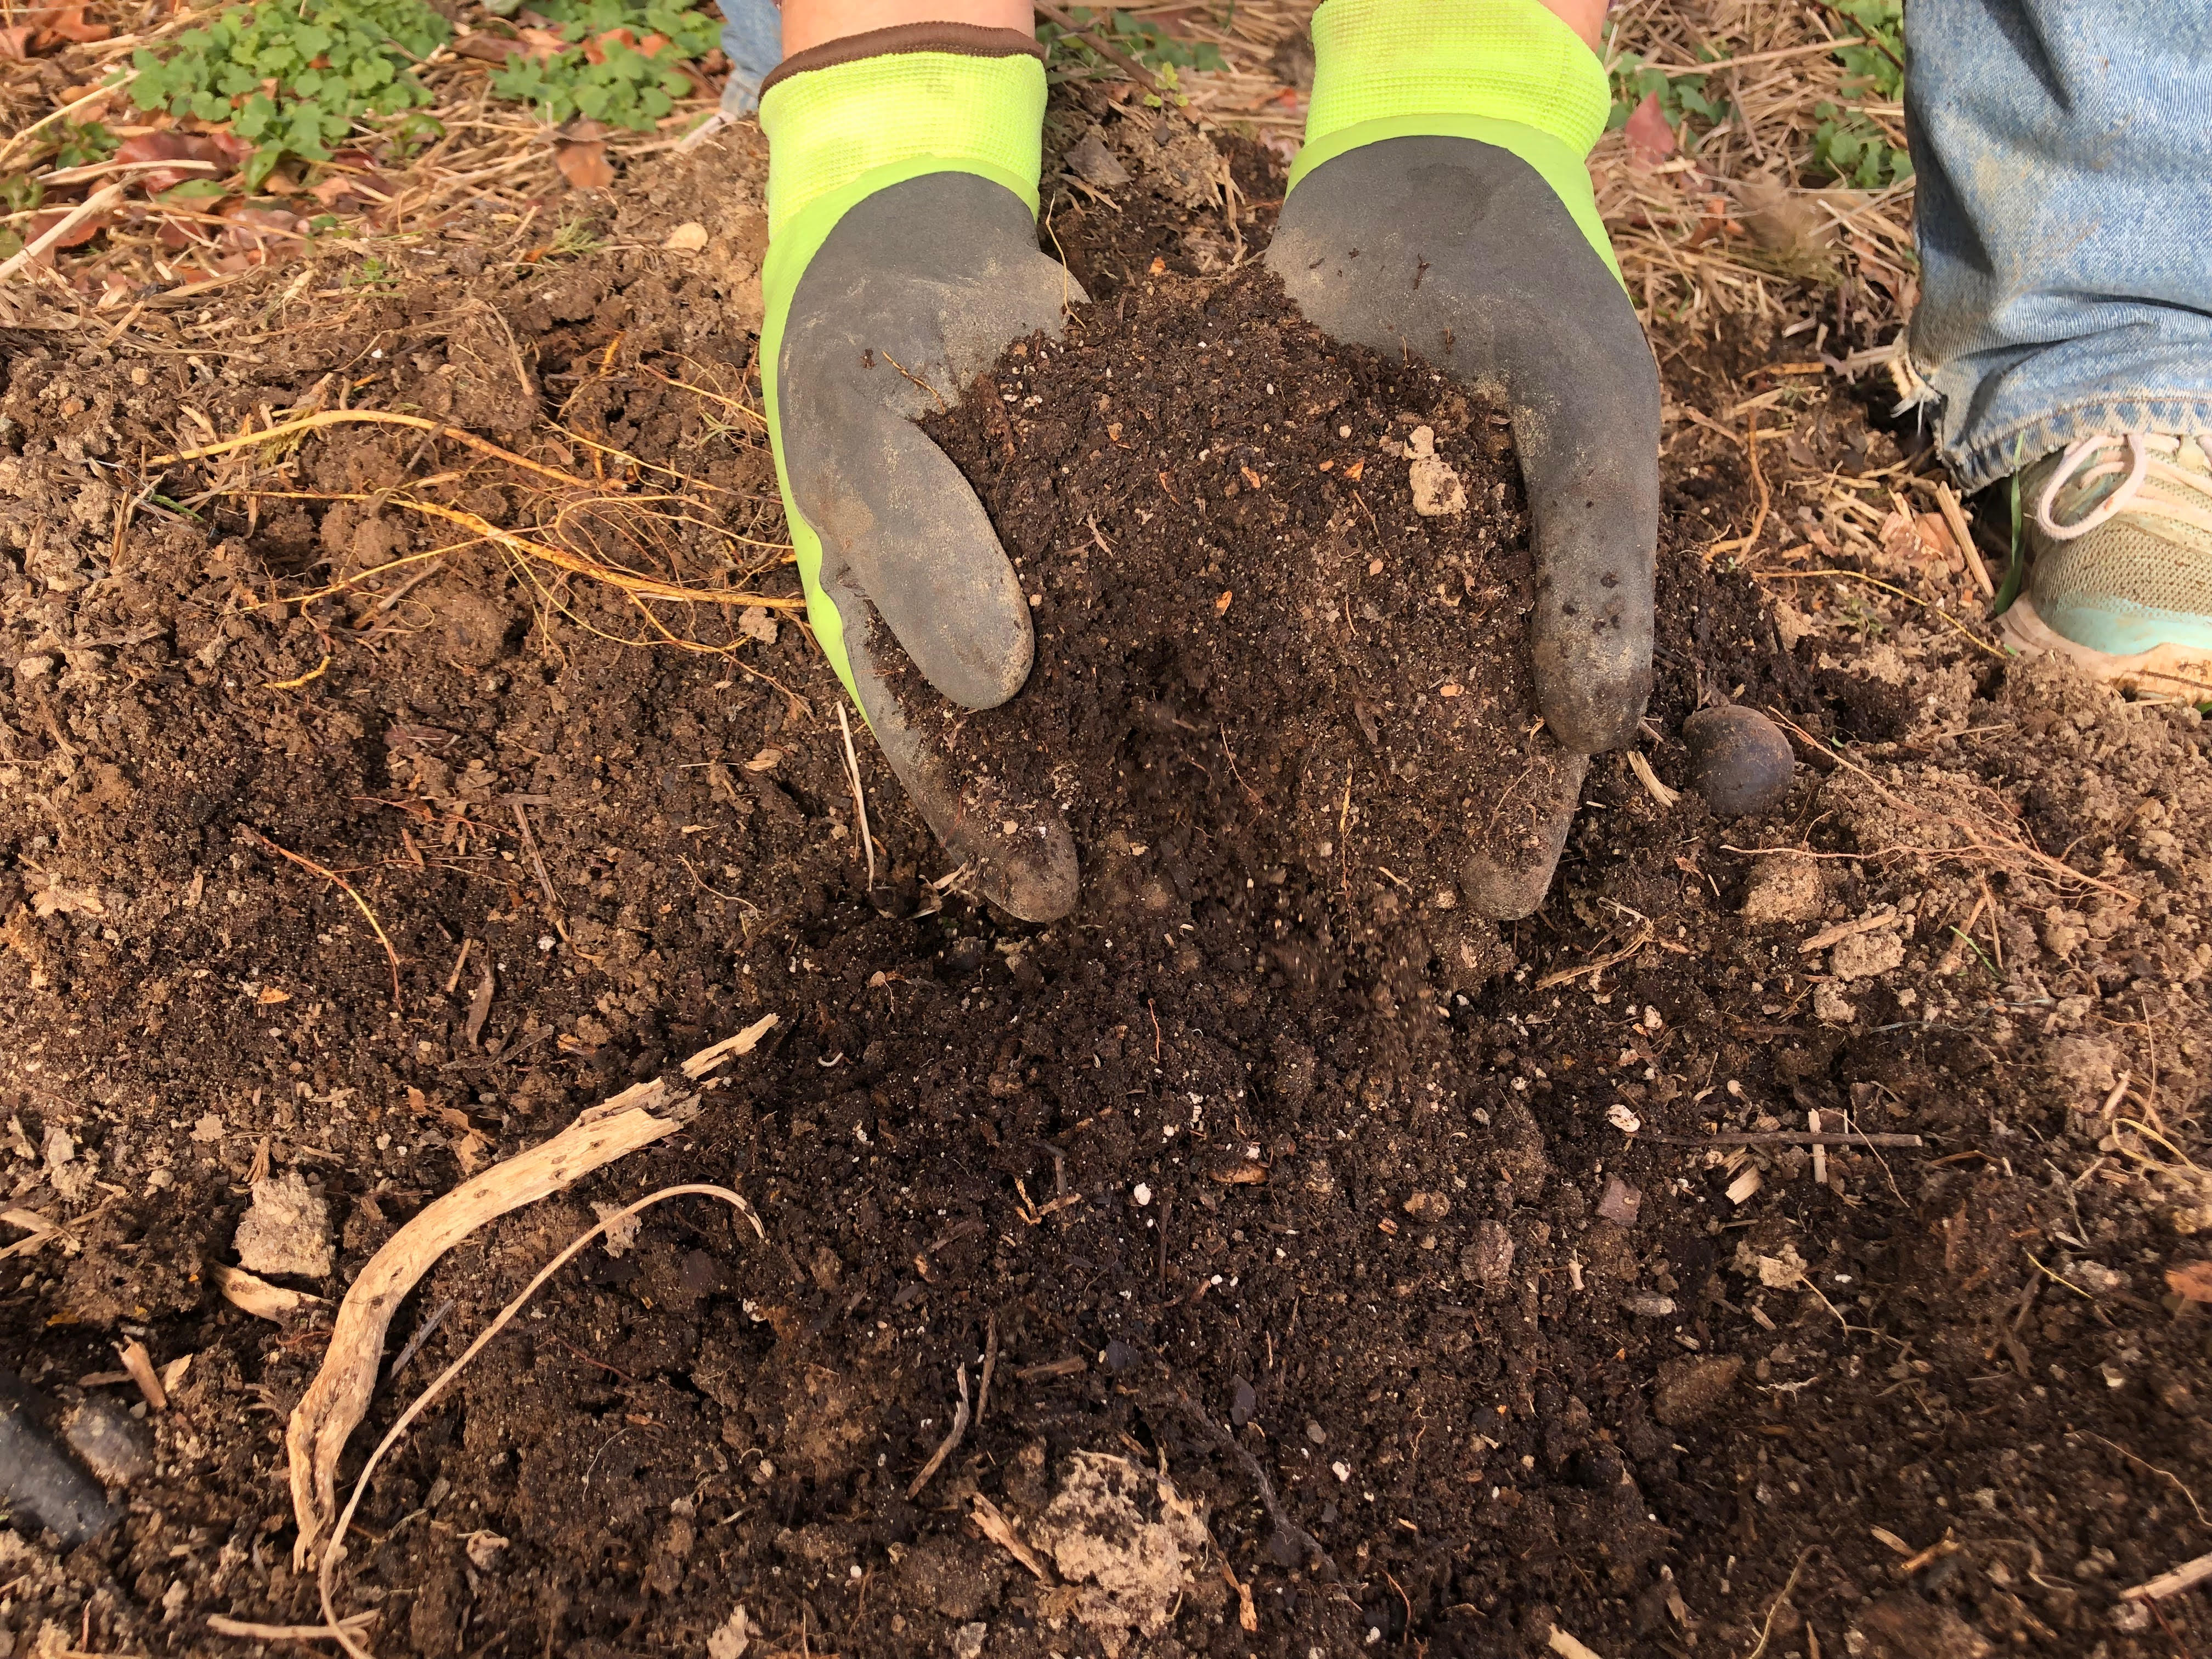 A person digging through the nutrient rich soil made by the compost